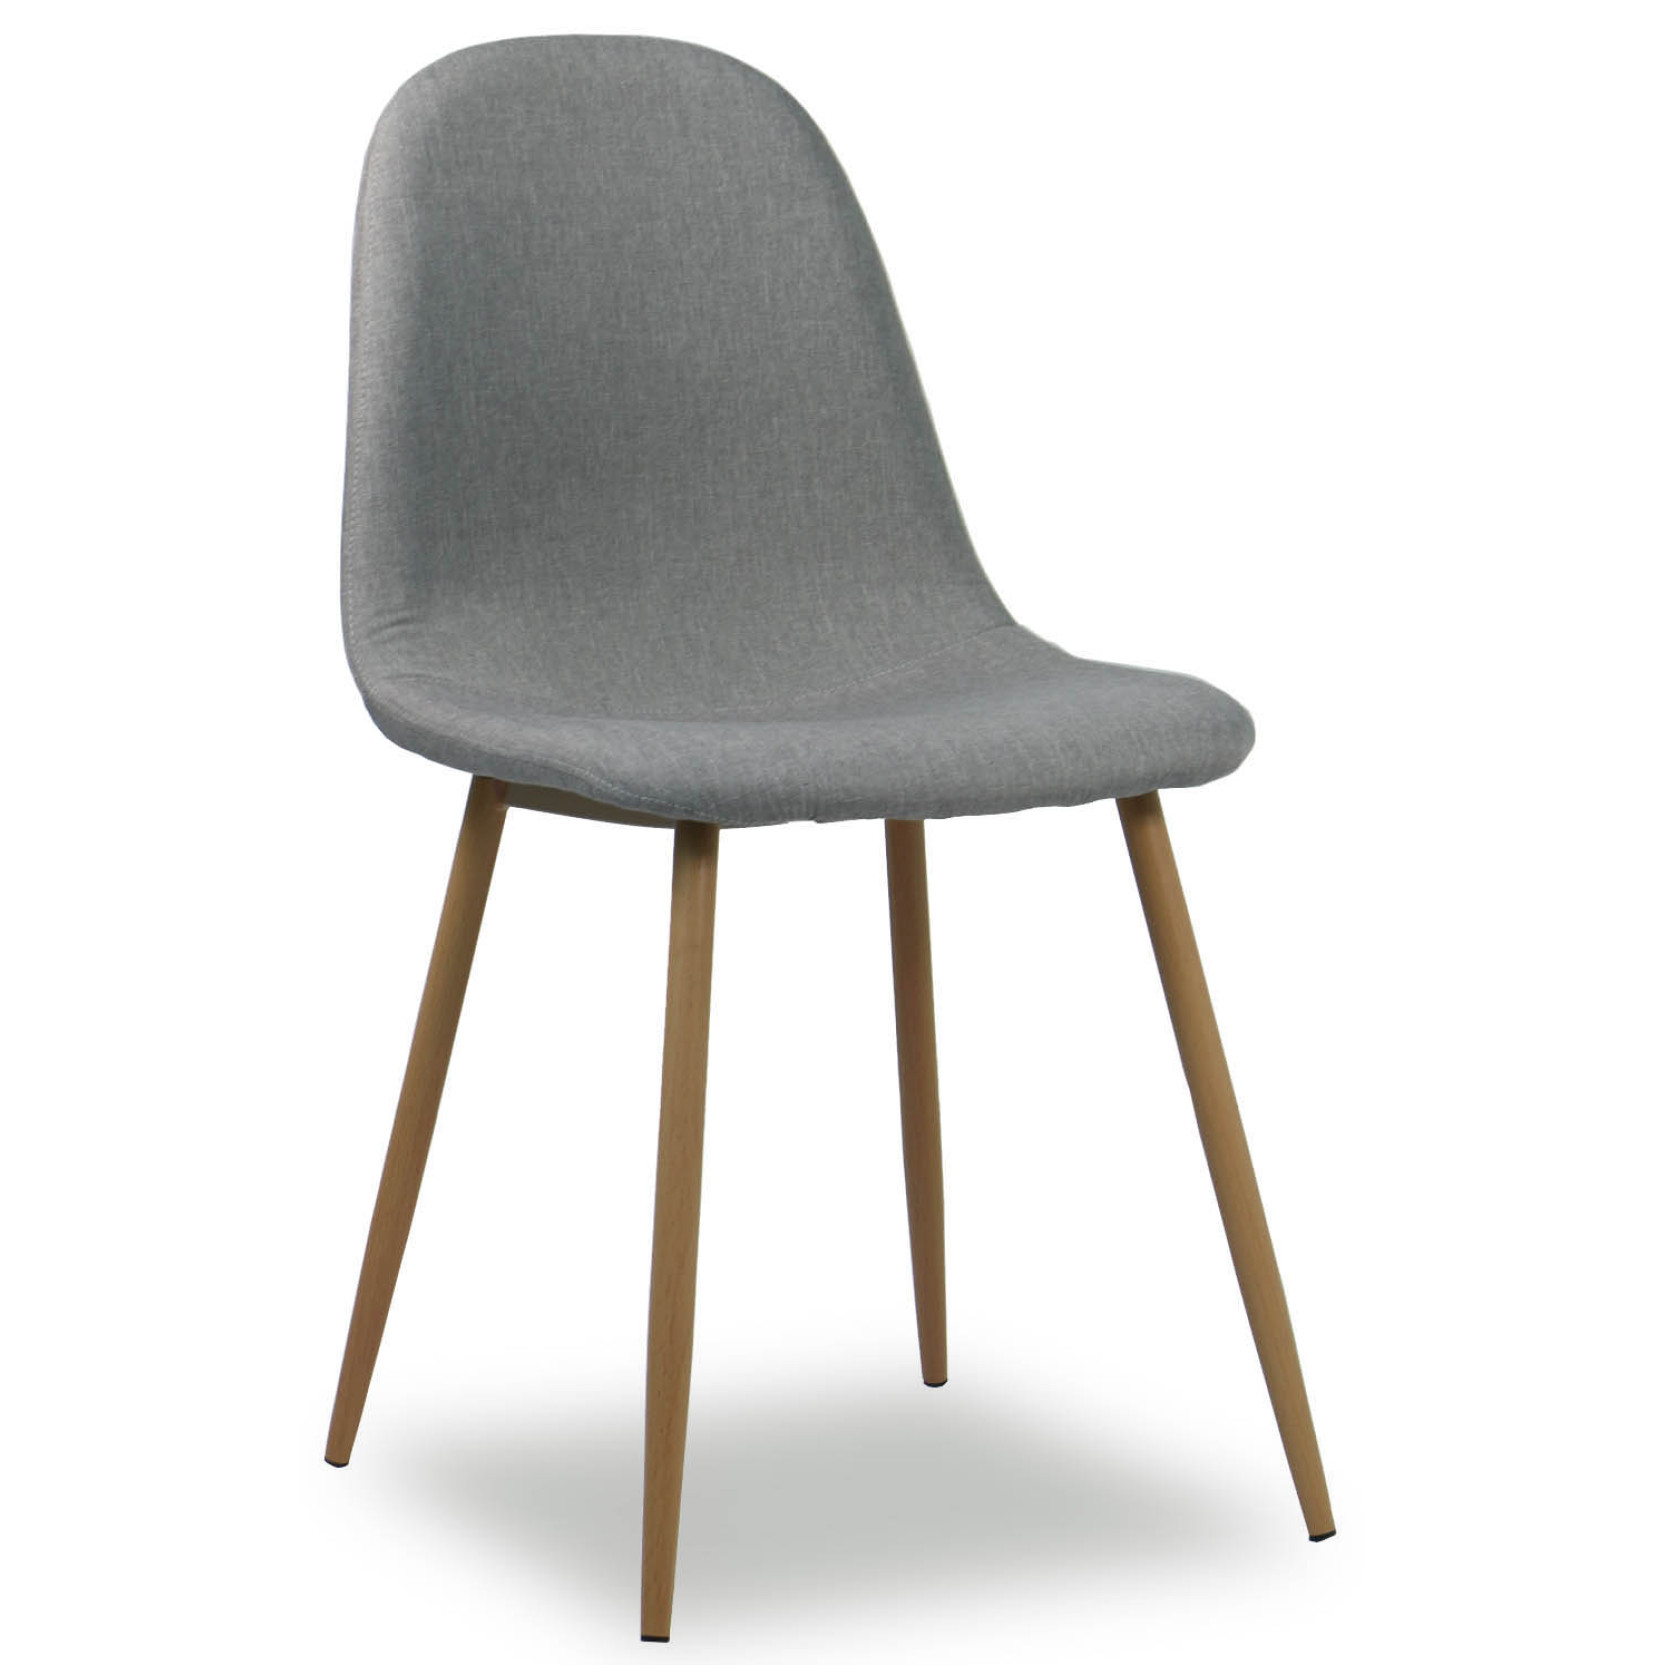 Quinny Designer Fabric Chair Grey  Furniture  Home